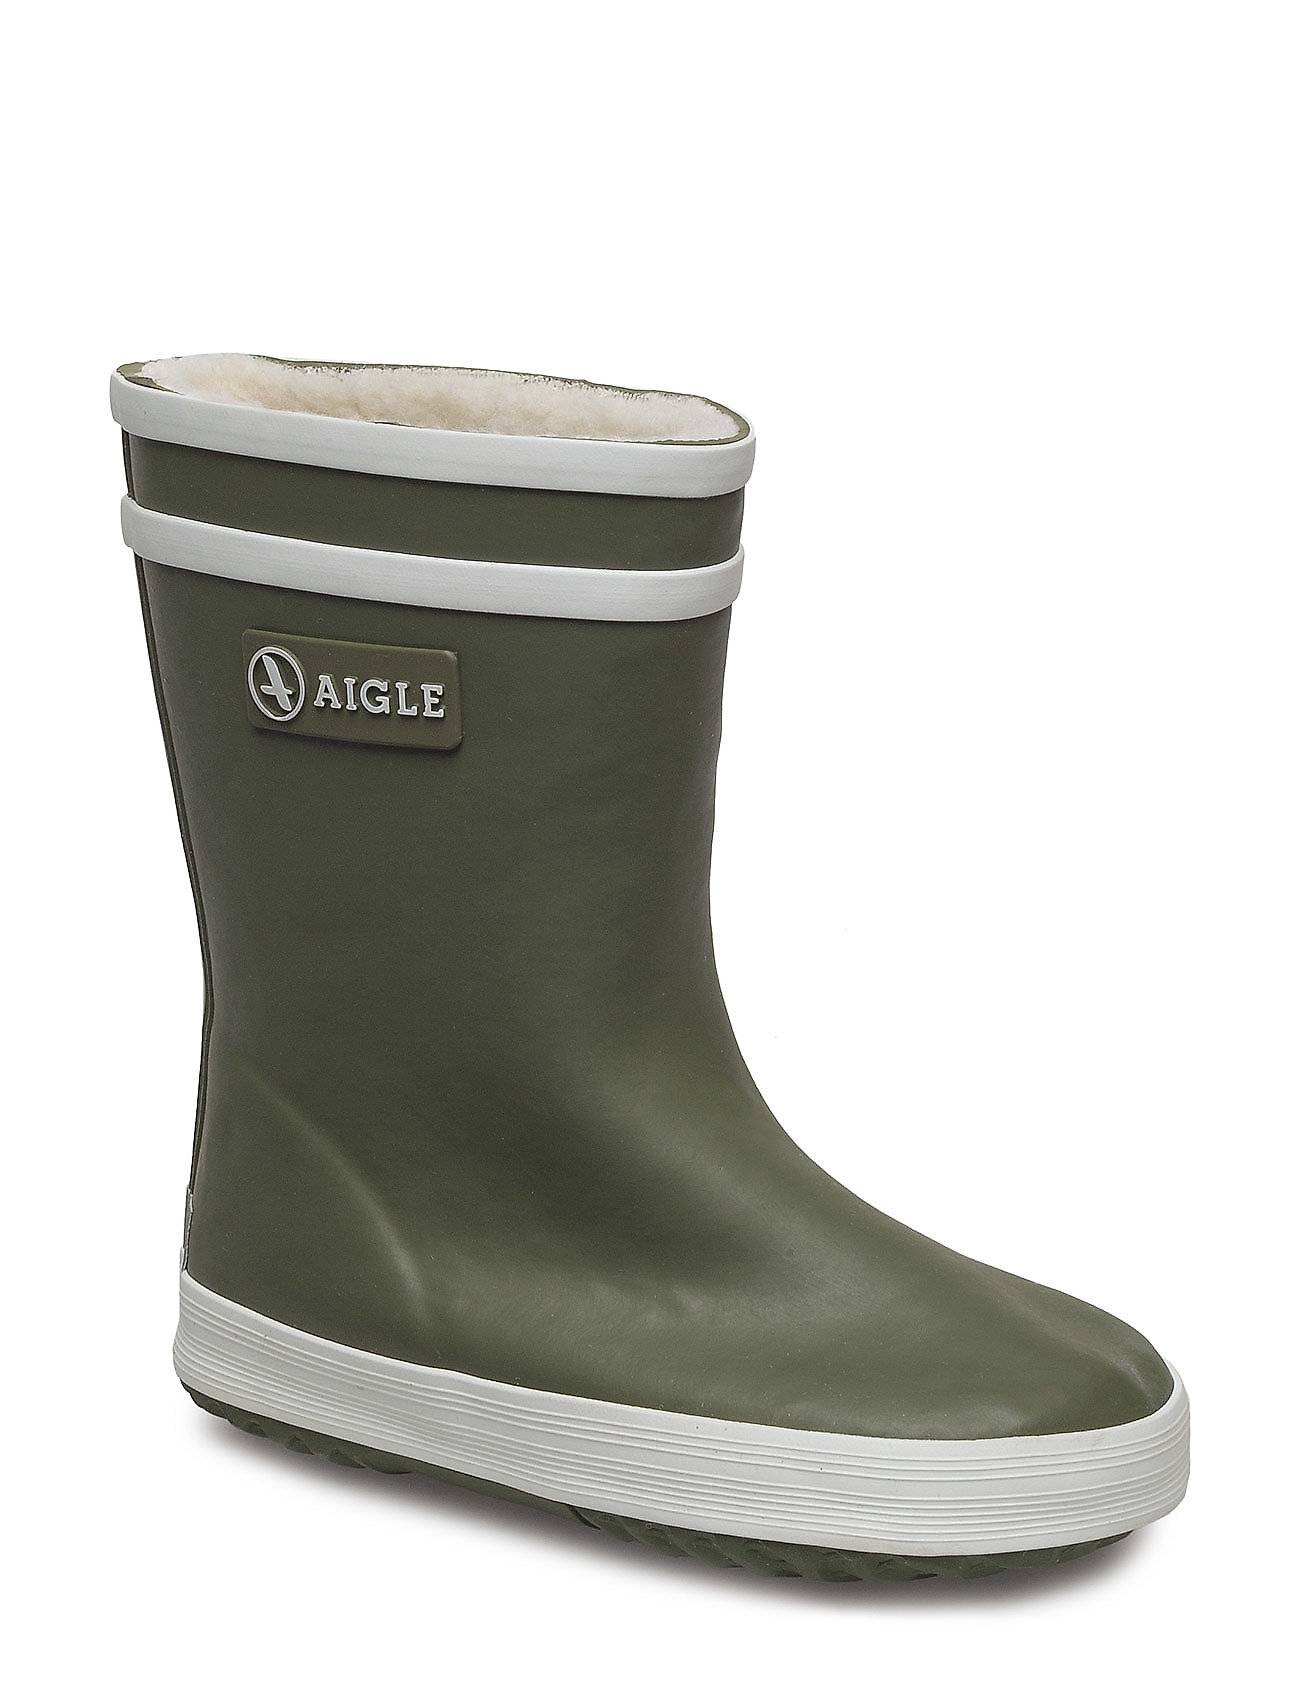 Aigle Baby Flac Fur Fougere